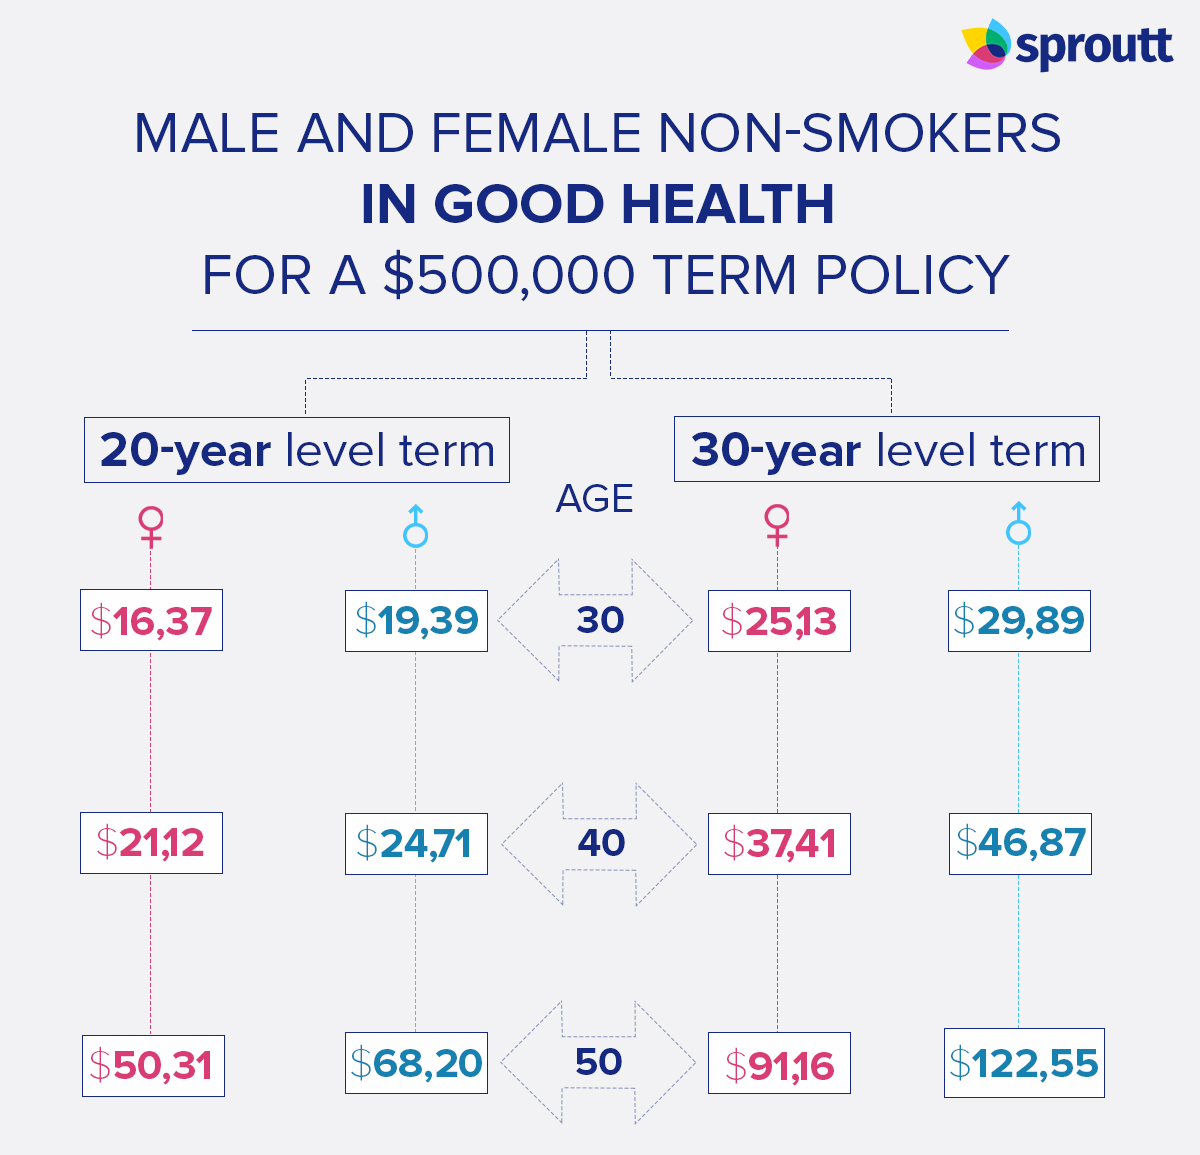 male and female non-smokers in good health for a $500,000 term policy infographic